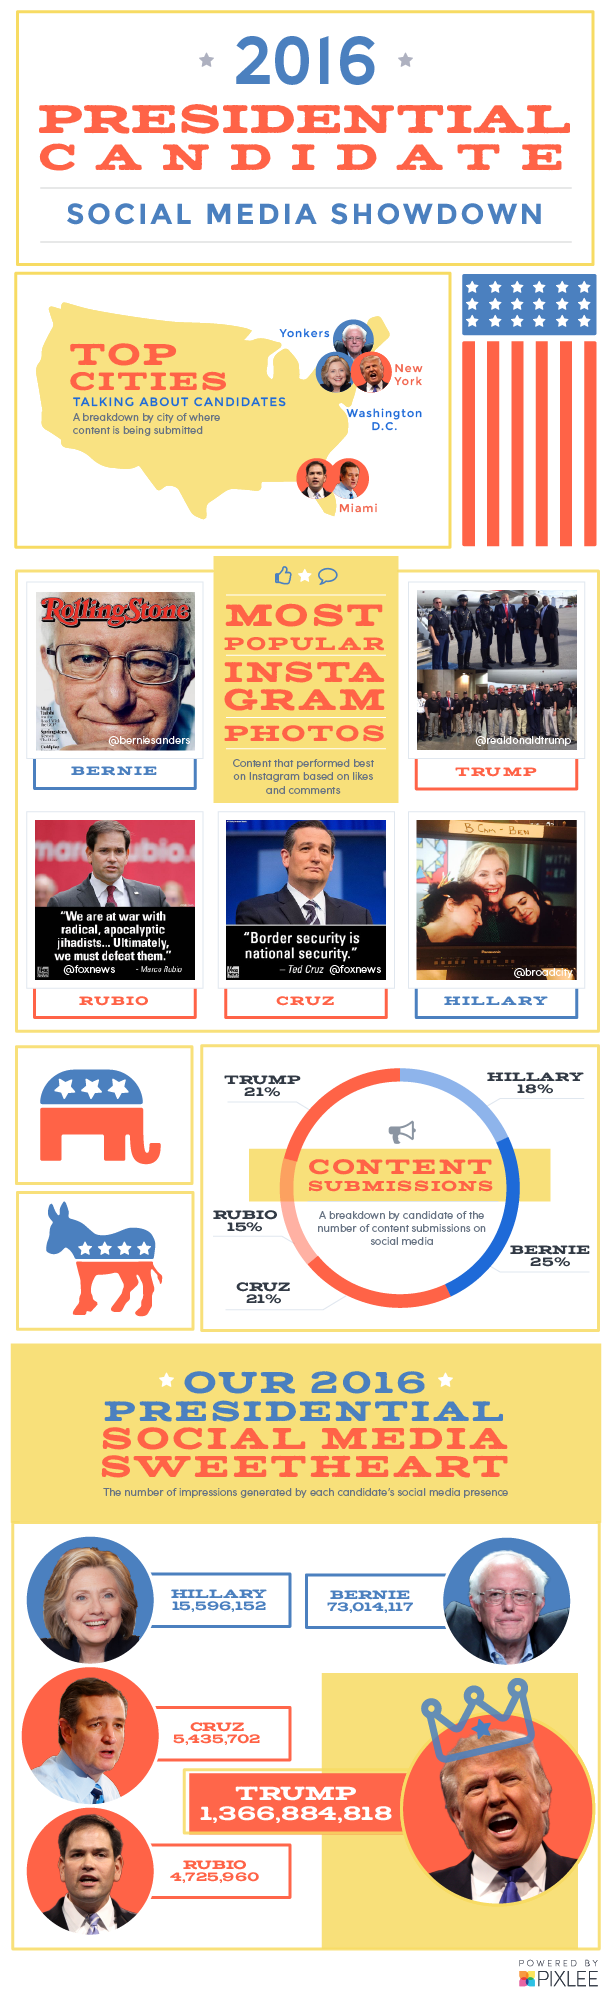 2016-presidential-candidates-social-media-sweetheart.png